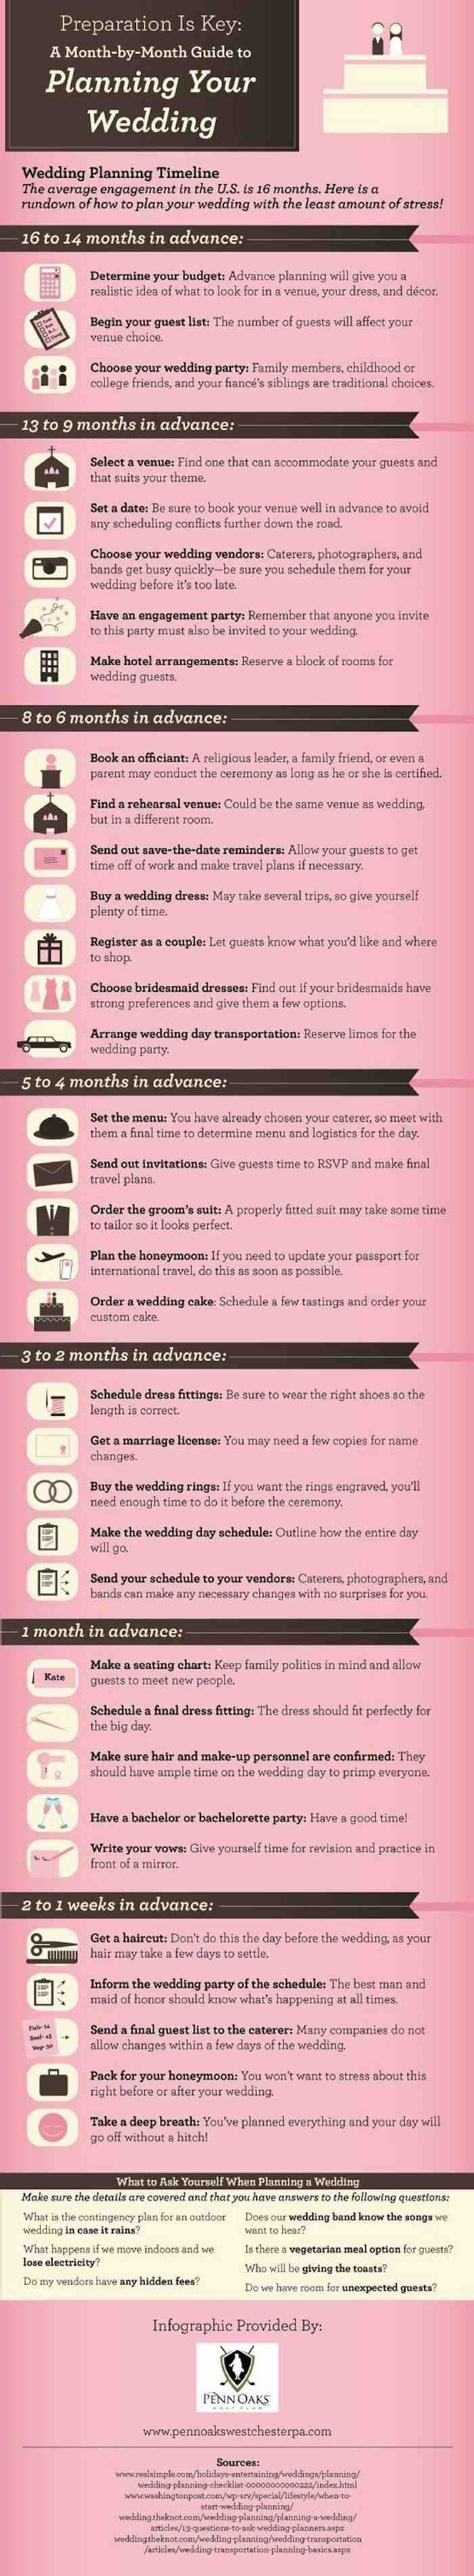 Best 25 Wedding Planning Checklist Ideas On Pinterest List Timeline And Preparation